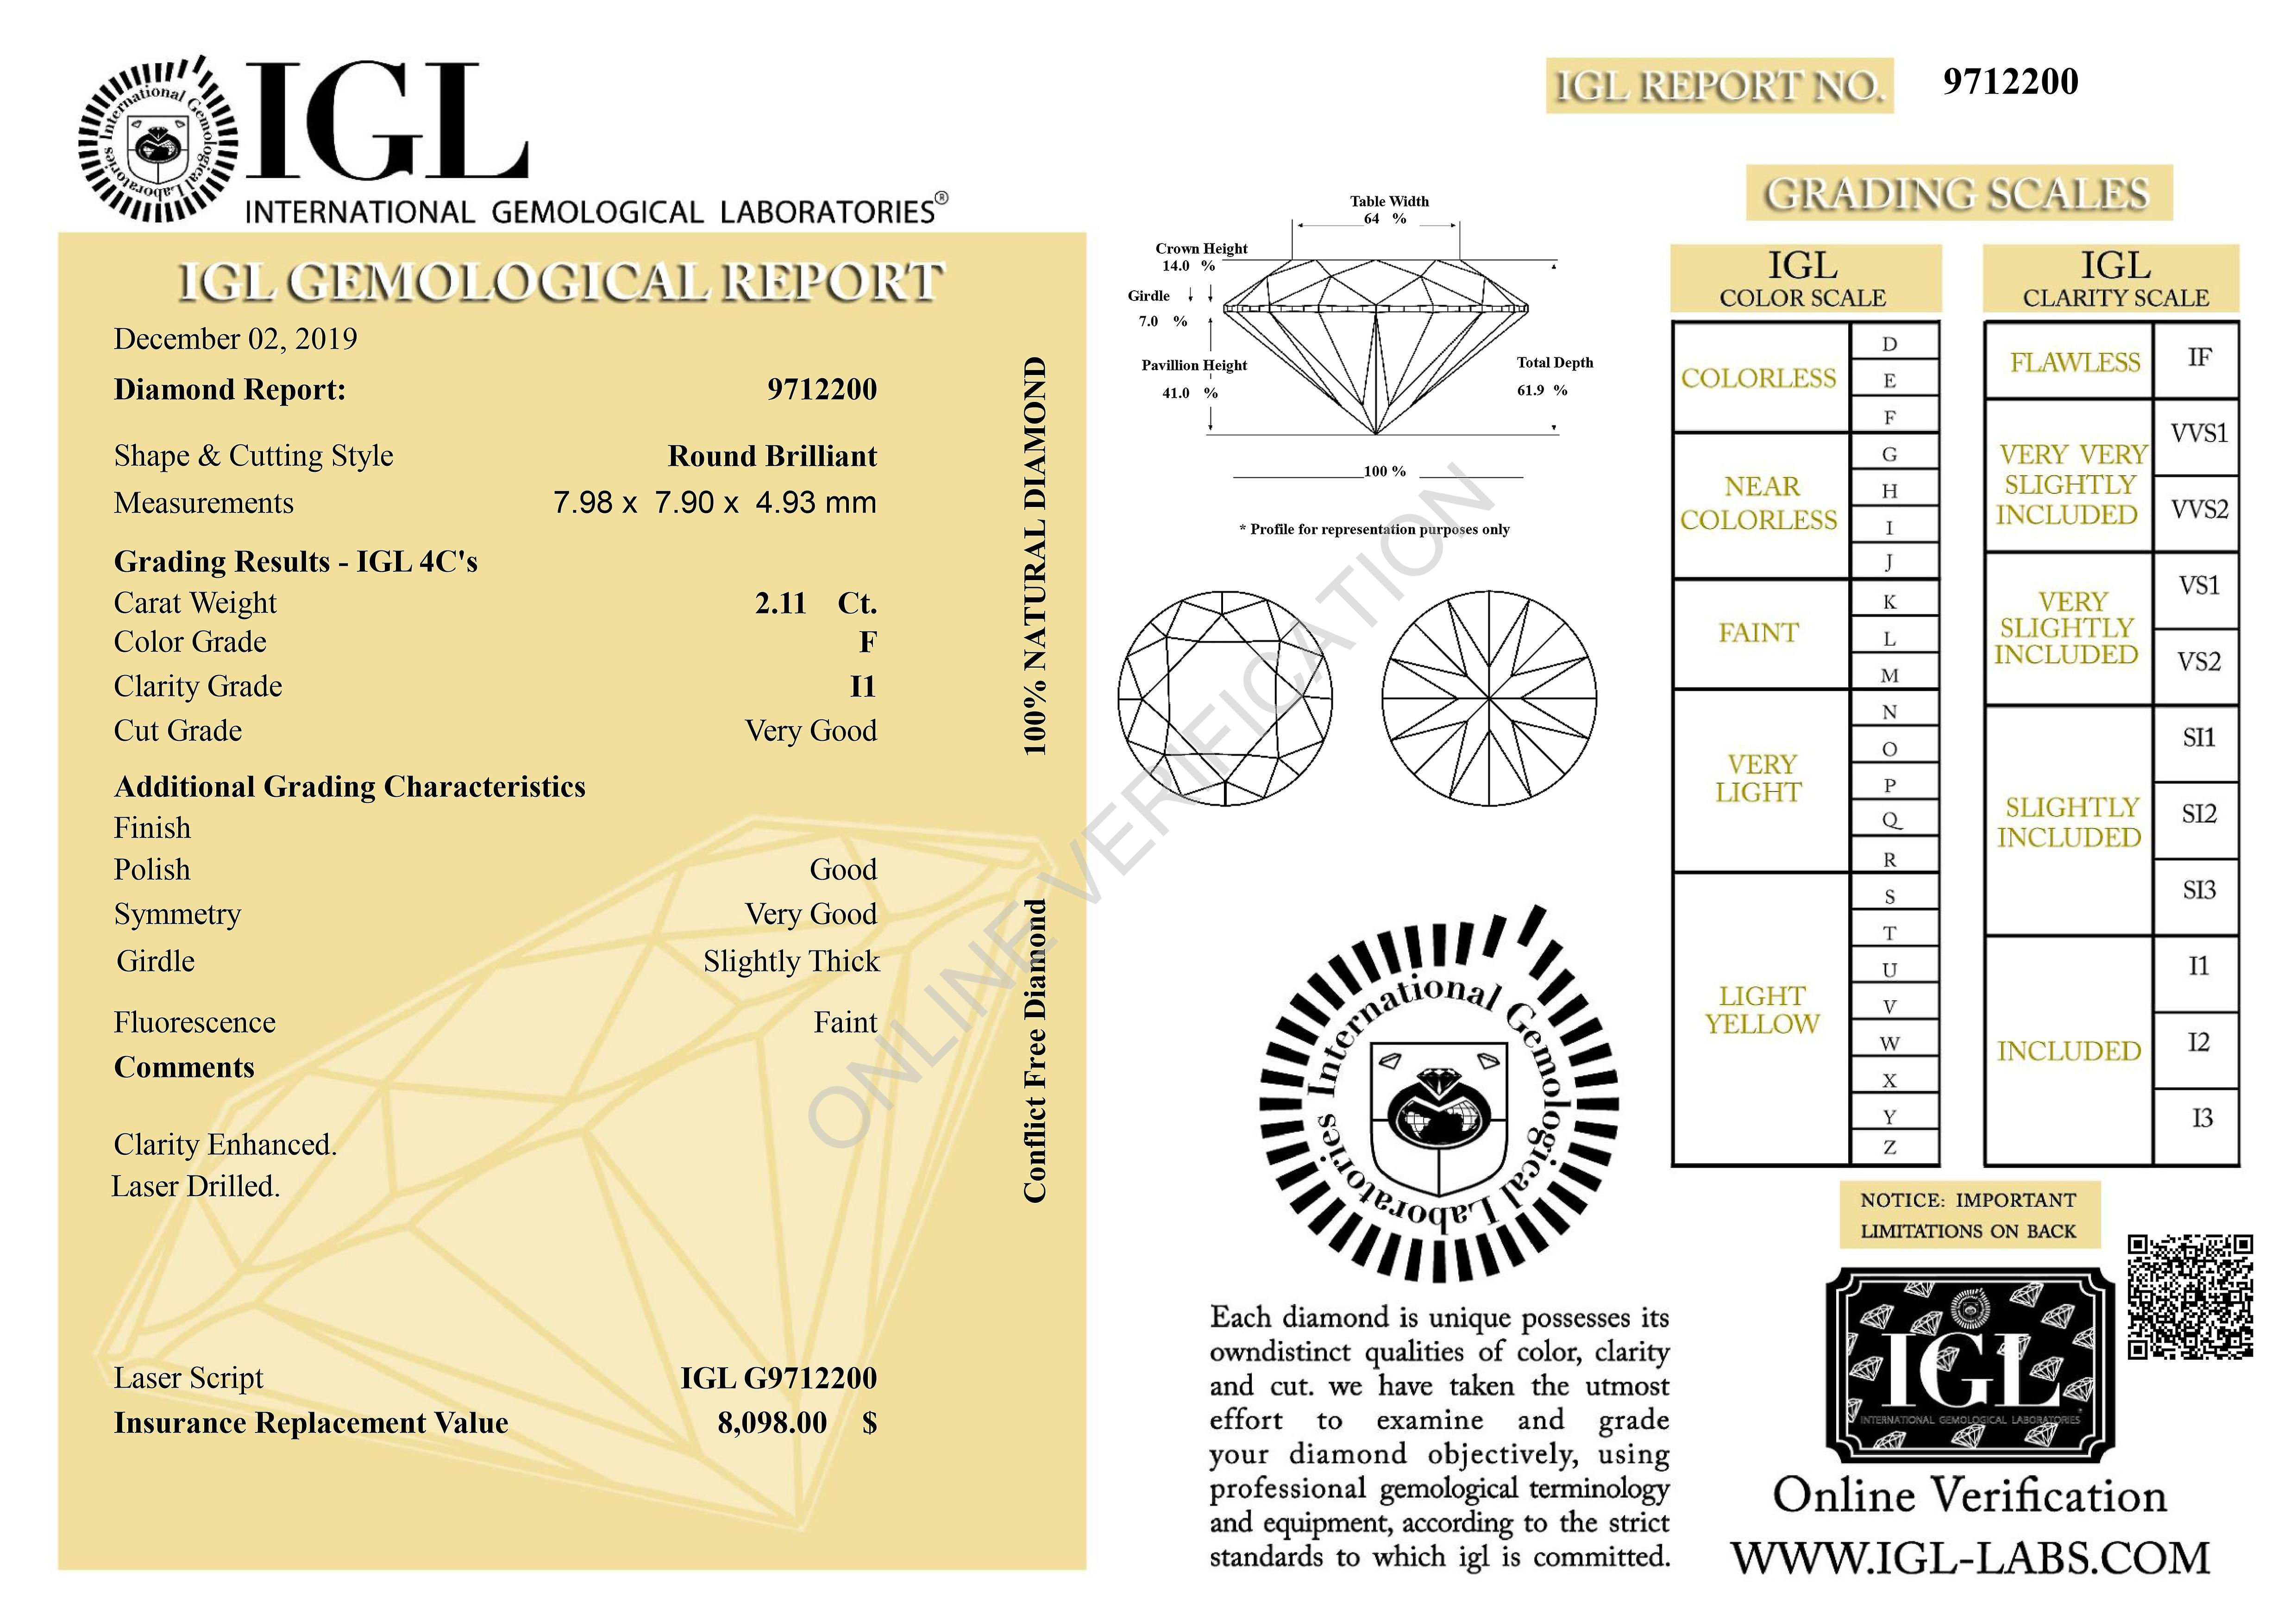 Certified 2.11 Carat F Color Round Brilliant Enhanced Natural Diamond 7.98mm